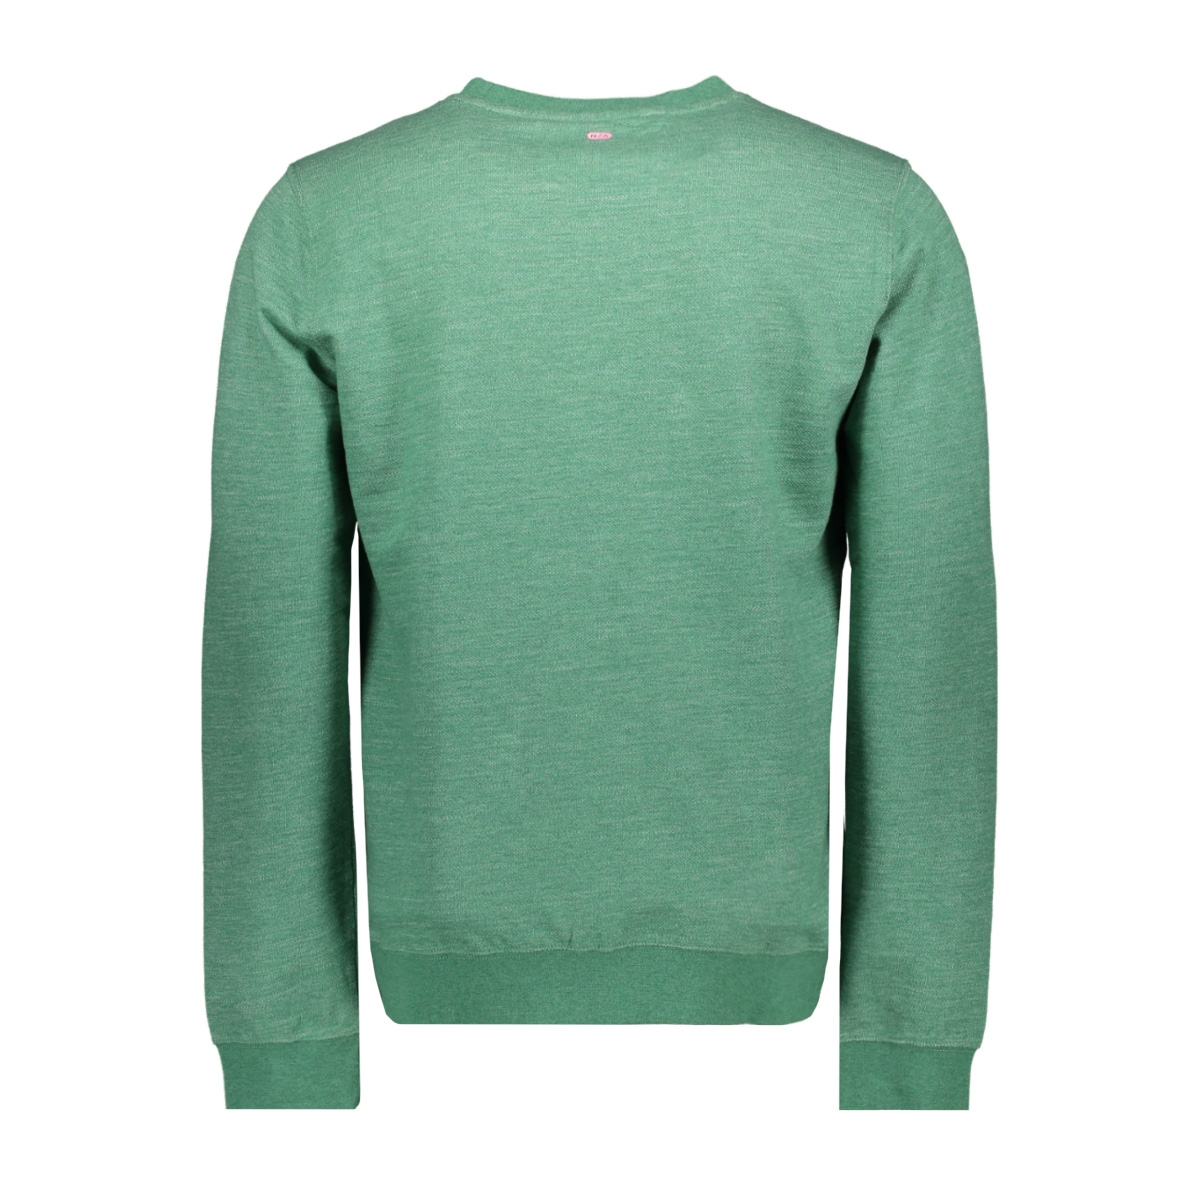 makakahi 19bn304 nza sweater 485 dusty green